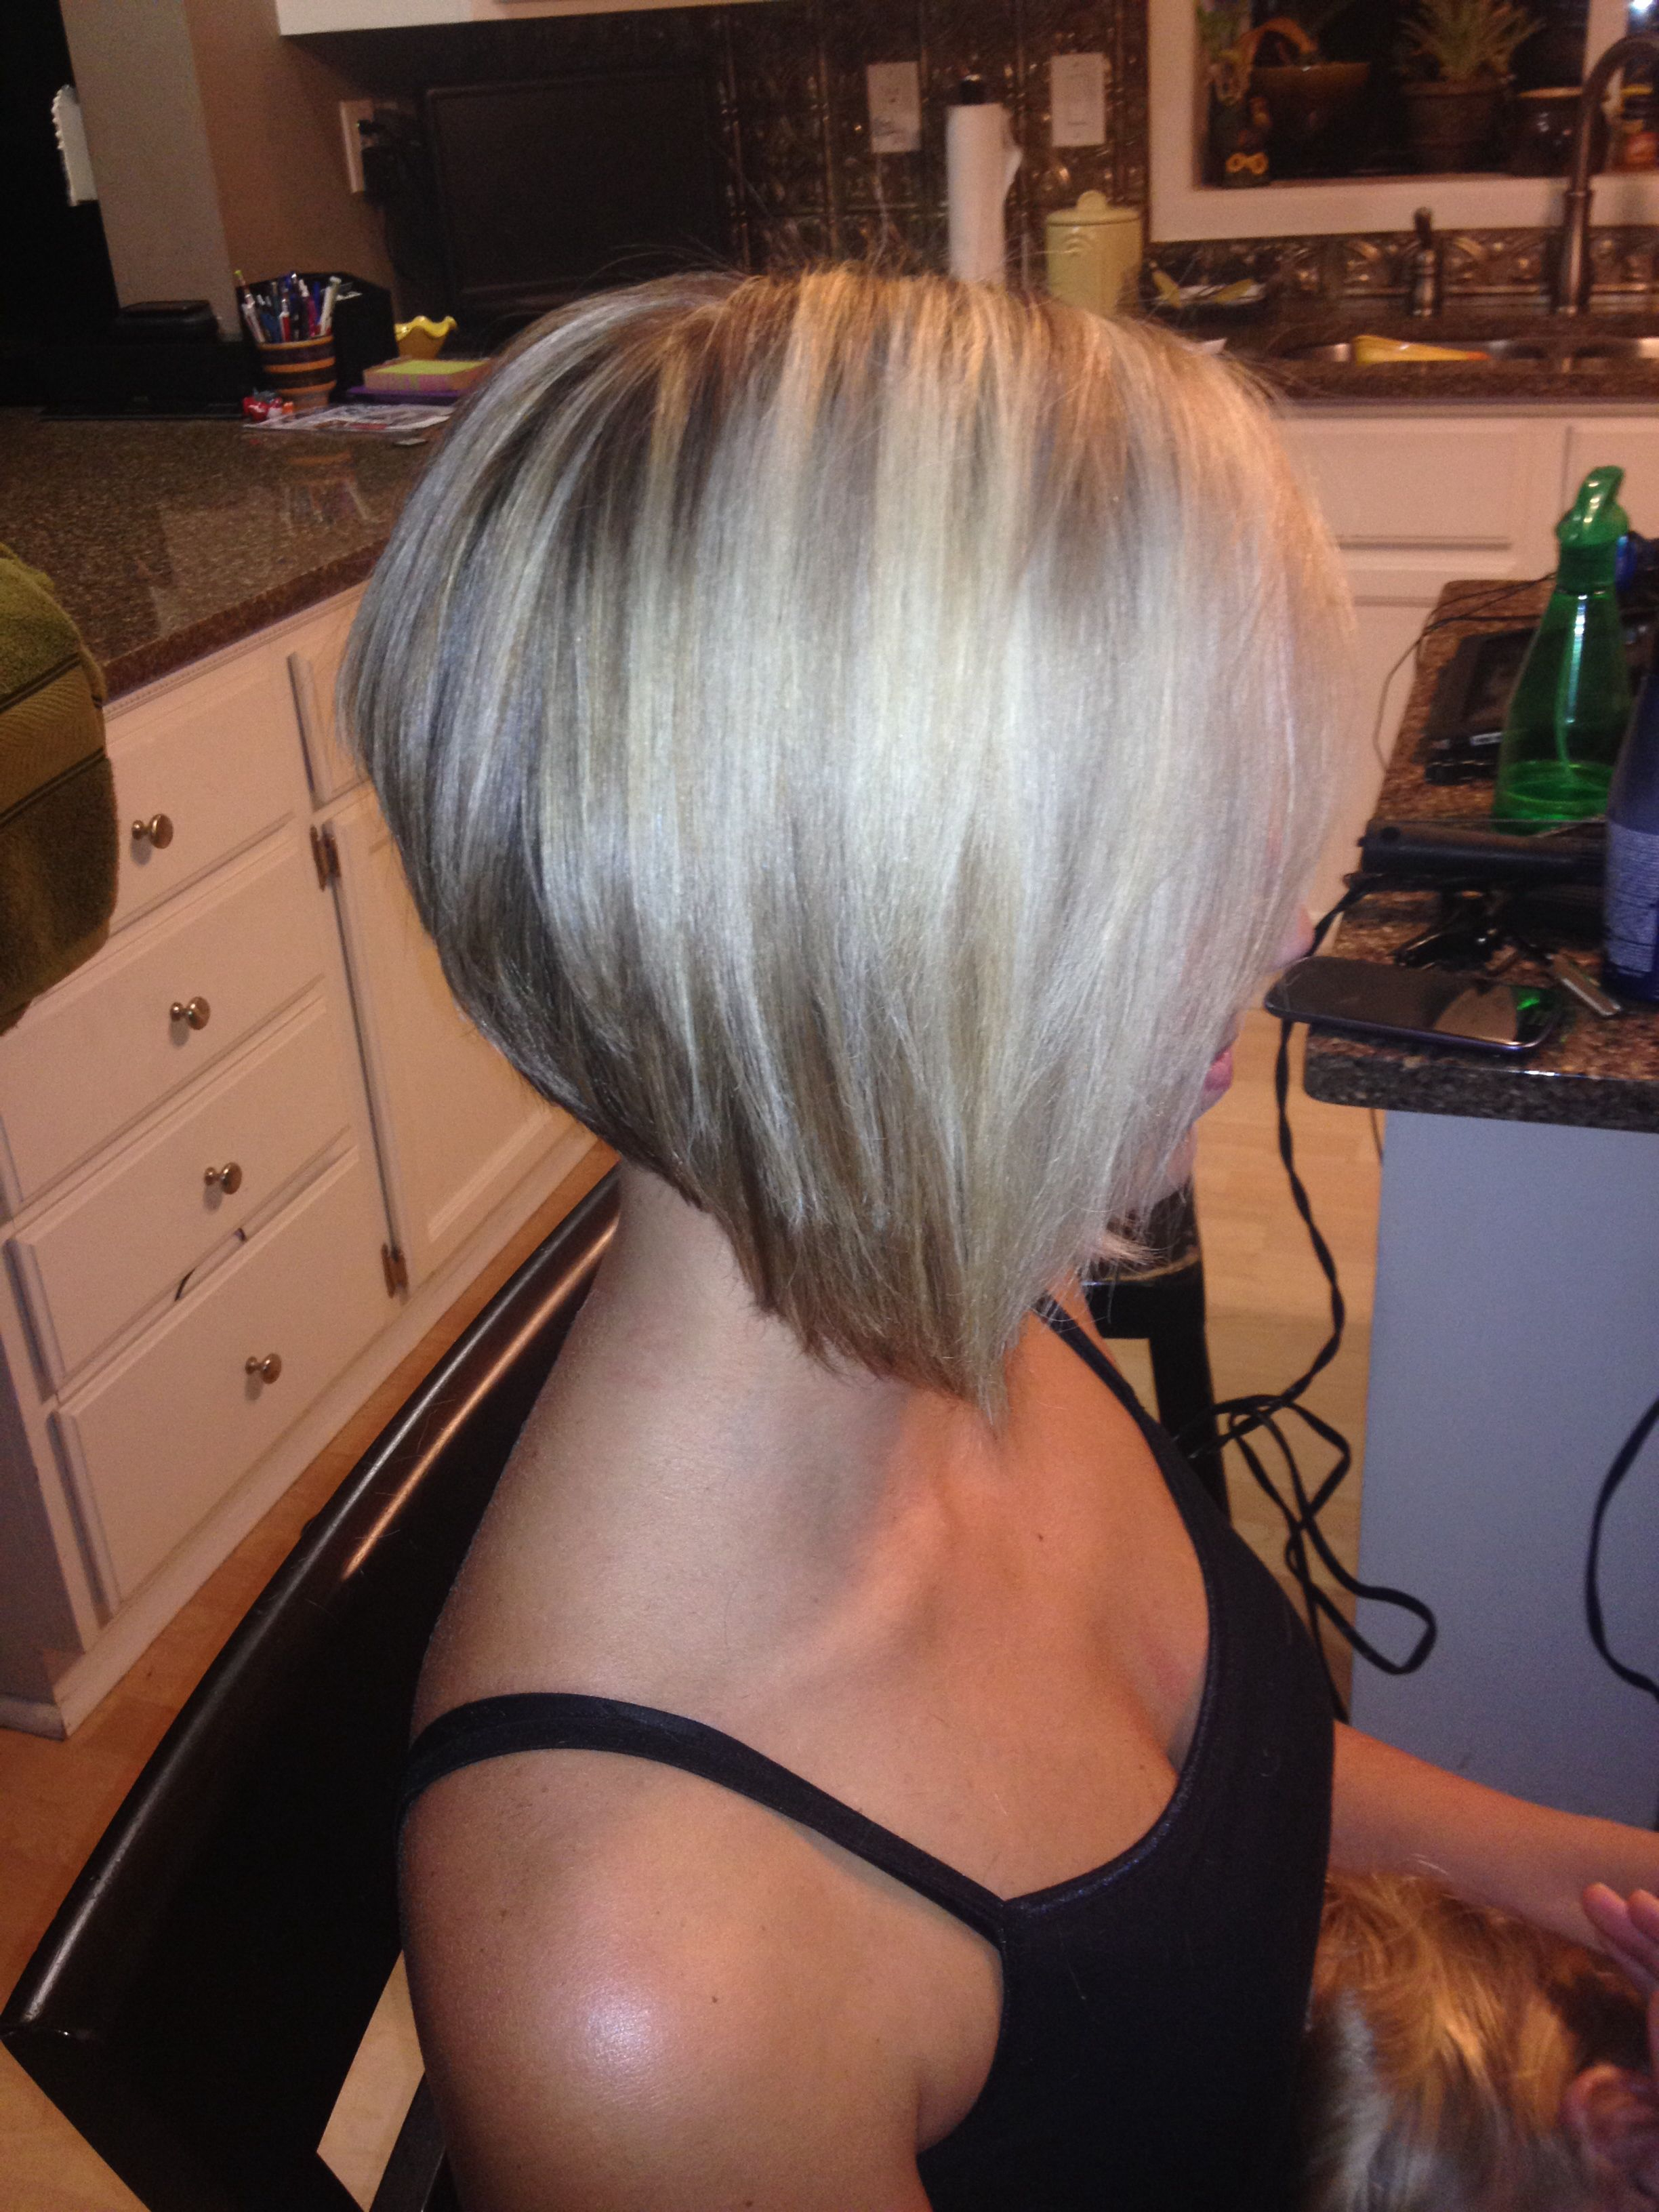 The Angled Bob Hairstyle | Haircuts | Pinterest | Hair Styles, Hair With Sleek Rounded Inverted Bob Hairstyles (View 14 of 20)